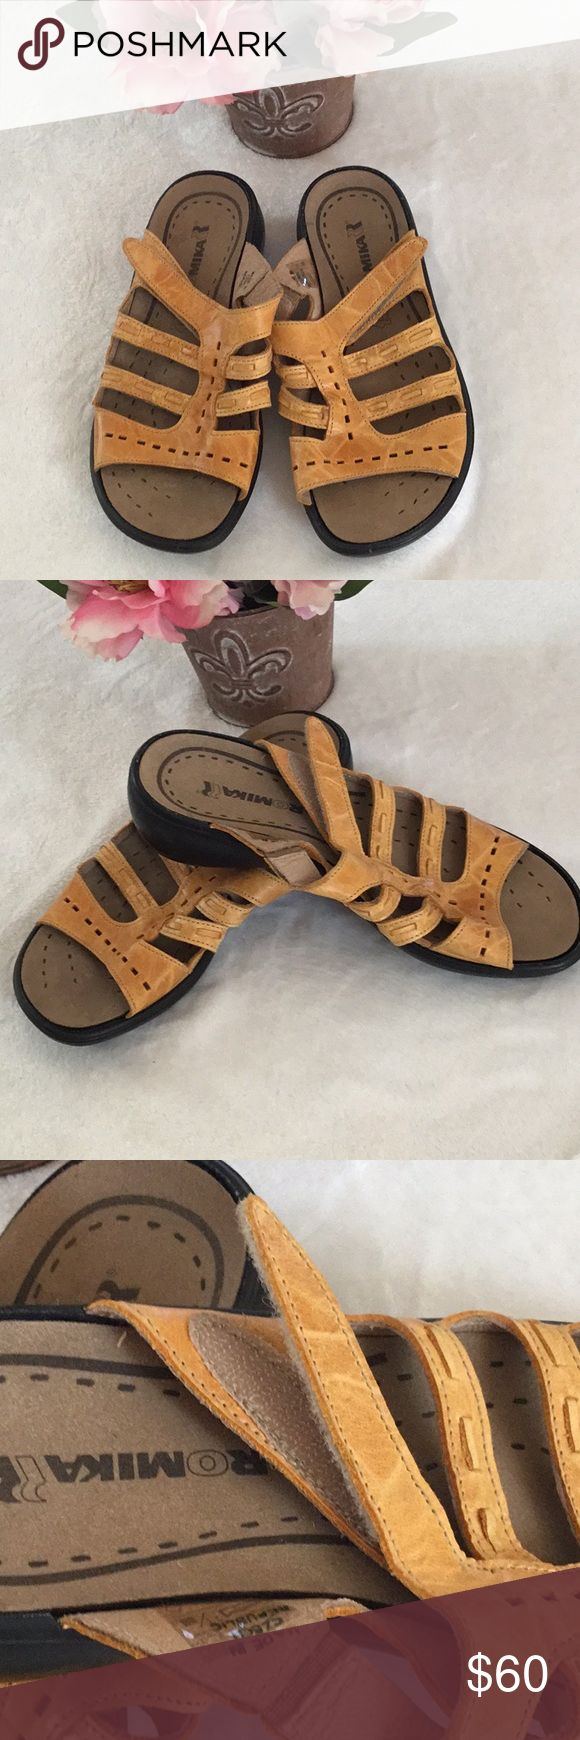 ROMIKA Yellow Leather Slide In Sandals Super comfortable Romika Sandals. Excellent Condition! Features: ⚜️Upper Leather ⚜️Made in Czech Republic ⚜️1.25 Heel ⚜️Man made outsole Romika Shoes Sandals